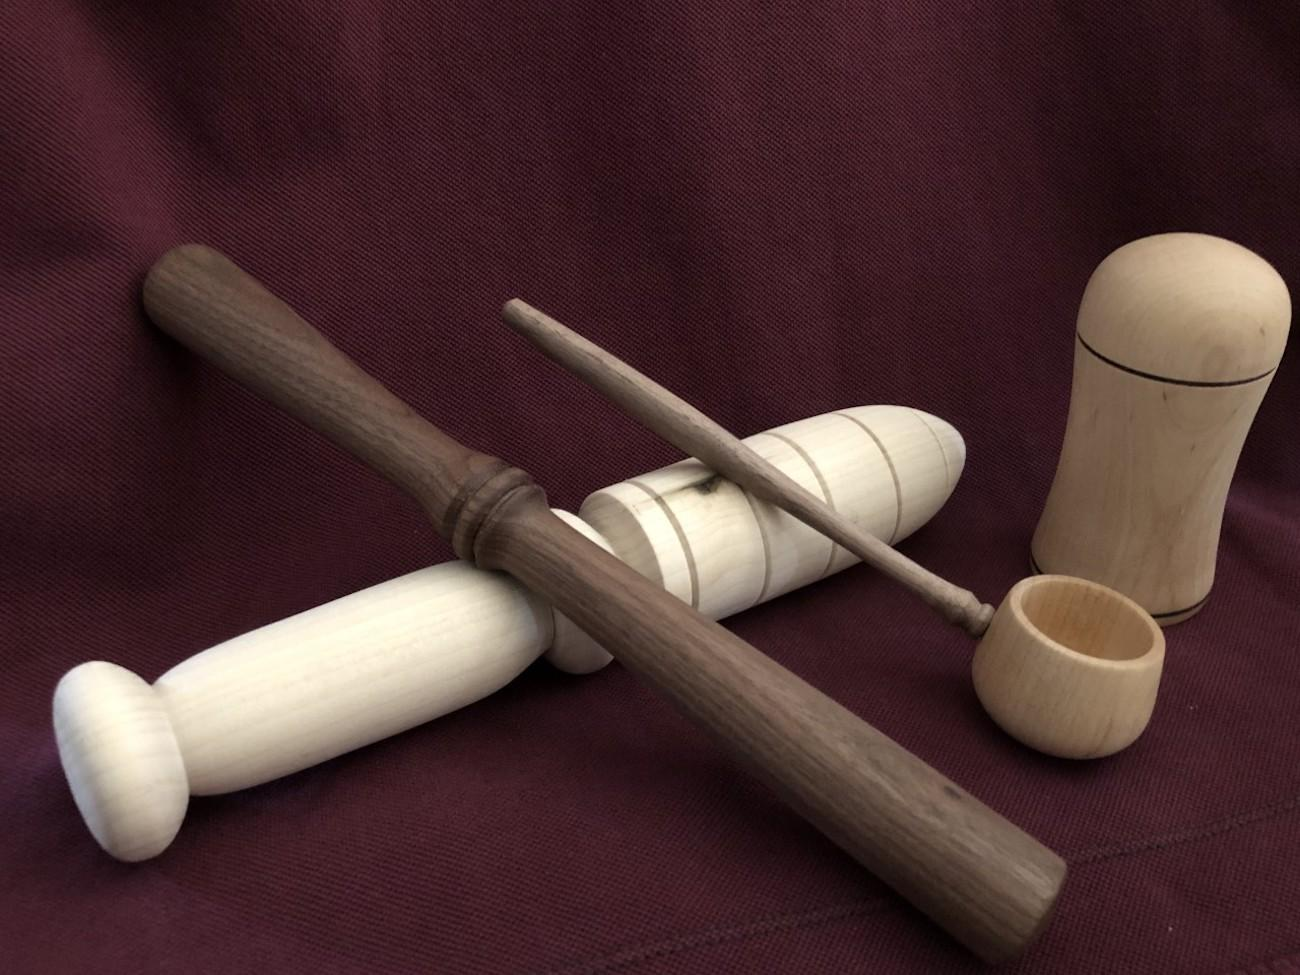 Garden dibble, scoop, secret salt shaker, and a mortar by Monica Bluestein, a five-year turning veteran / Image courtesy of the Ohio Valley Woodturners Guild // Published: 4.18.19